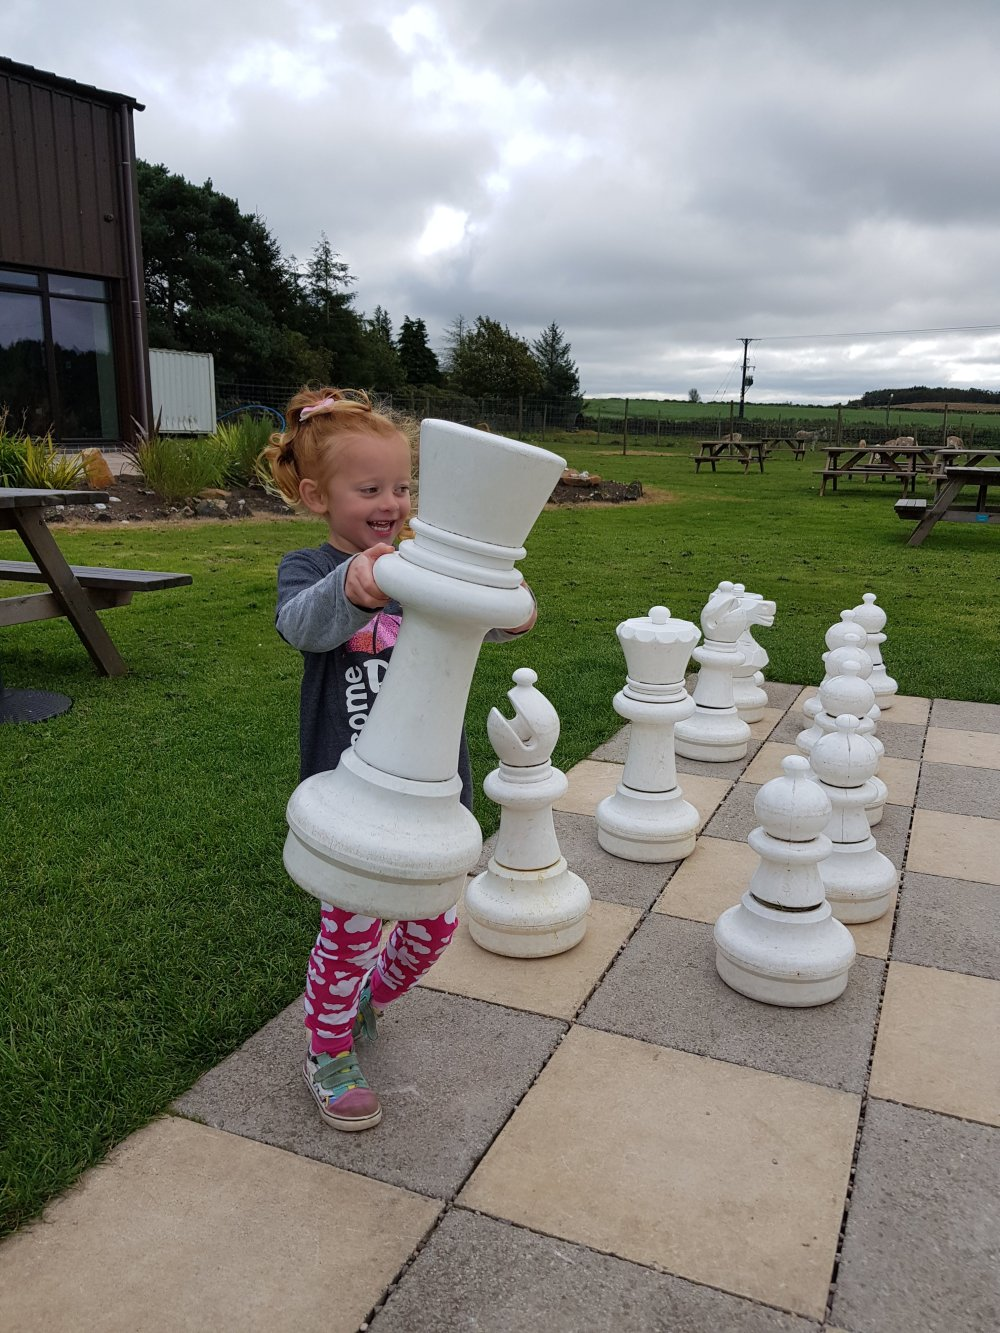 She has a few things to learn about chess...